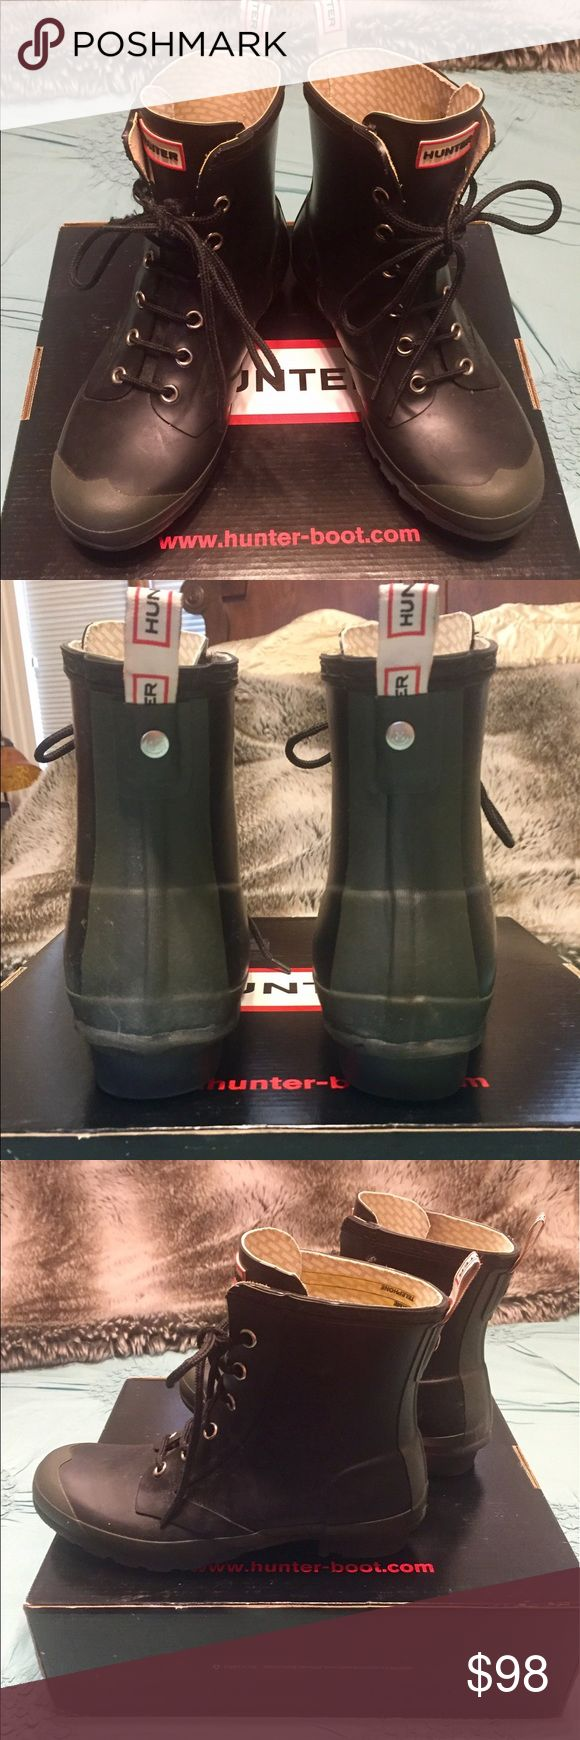 """🆕 Hard to find Hunter Brixen lace-up short boots These all weather ☔️ boots are so cool! Always get compliments on rainy days. Purchased from Saks. Unfortunately, a little too big on me except with thick socks as I'm a 7.5 and they're an 8. Box & Hunter """"boot shine"""" ($7 value) inc with purchase. In pristine condition except for 1 lace (see photo) that my cat thought was a toy. I called Hunter and they sent me replacement laces at no charge but now I can't find them! I'm guessing they would…"""